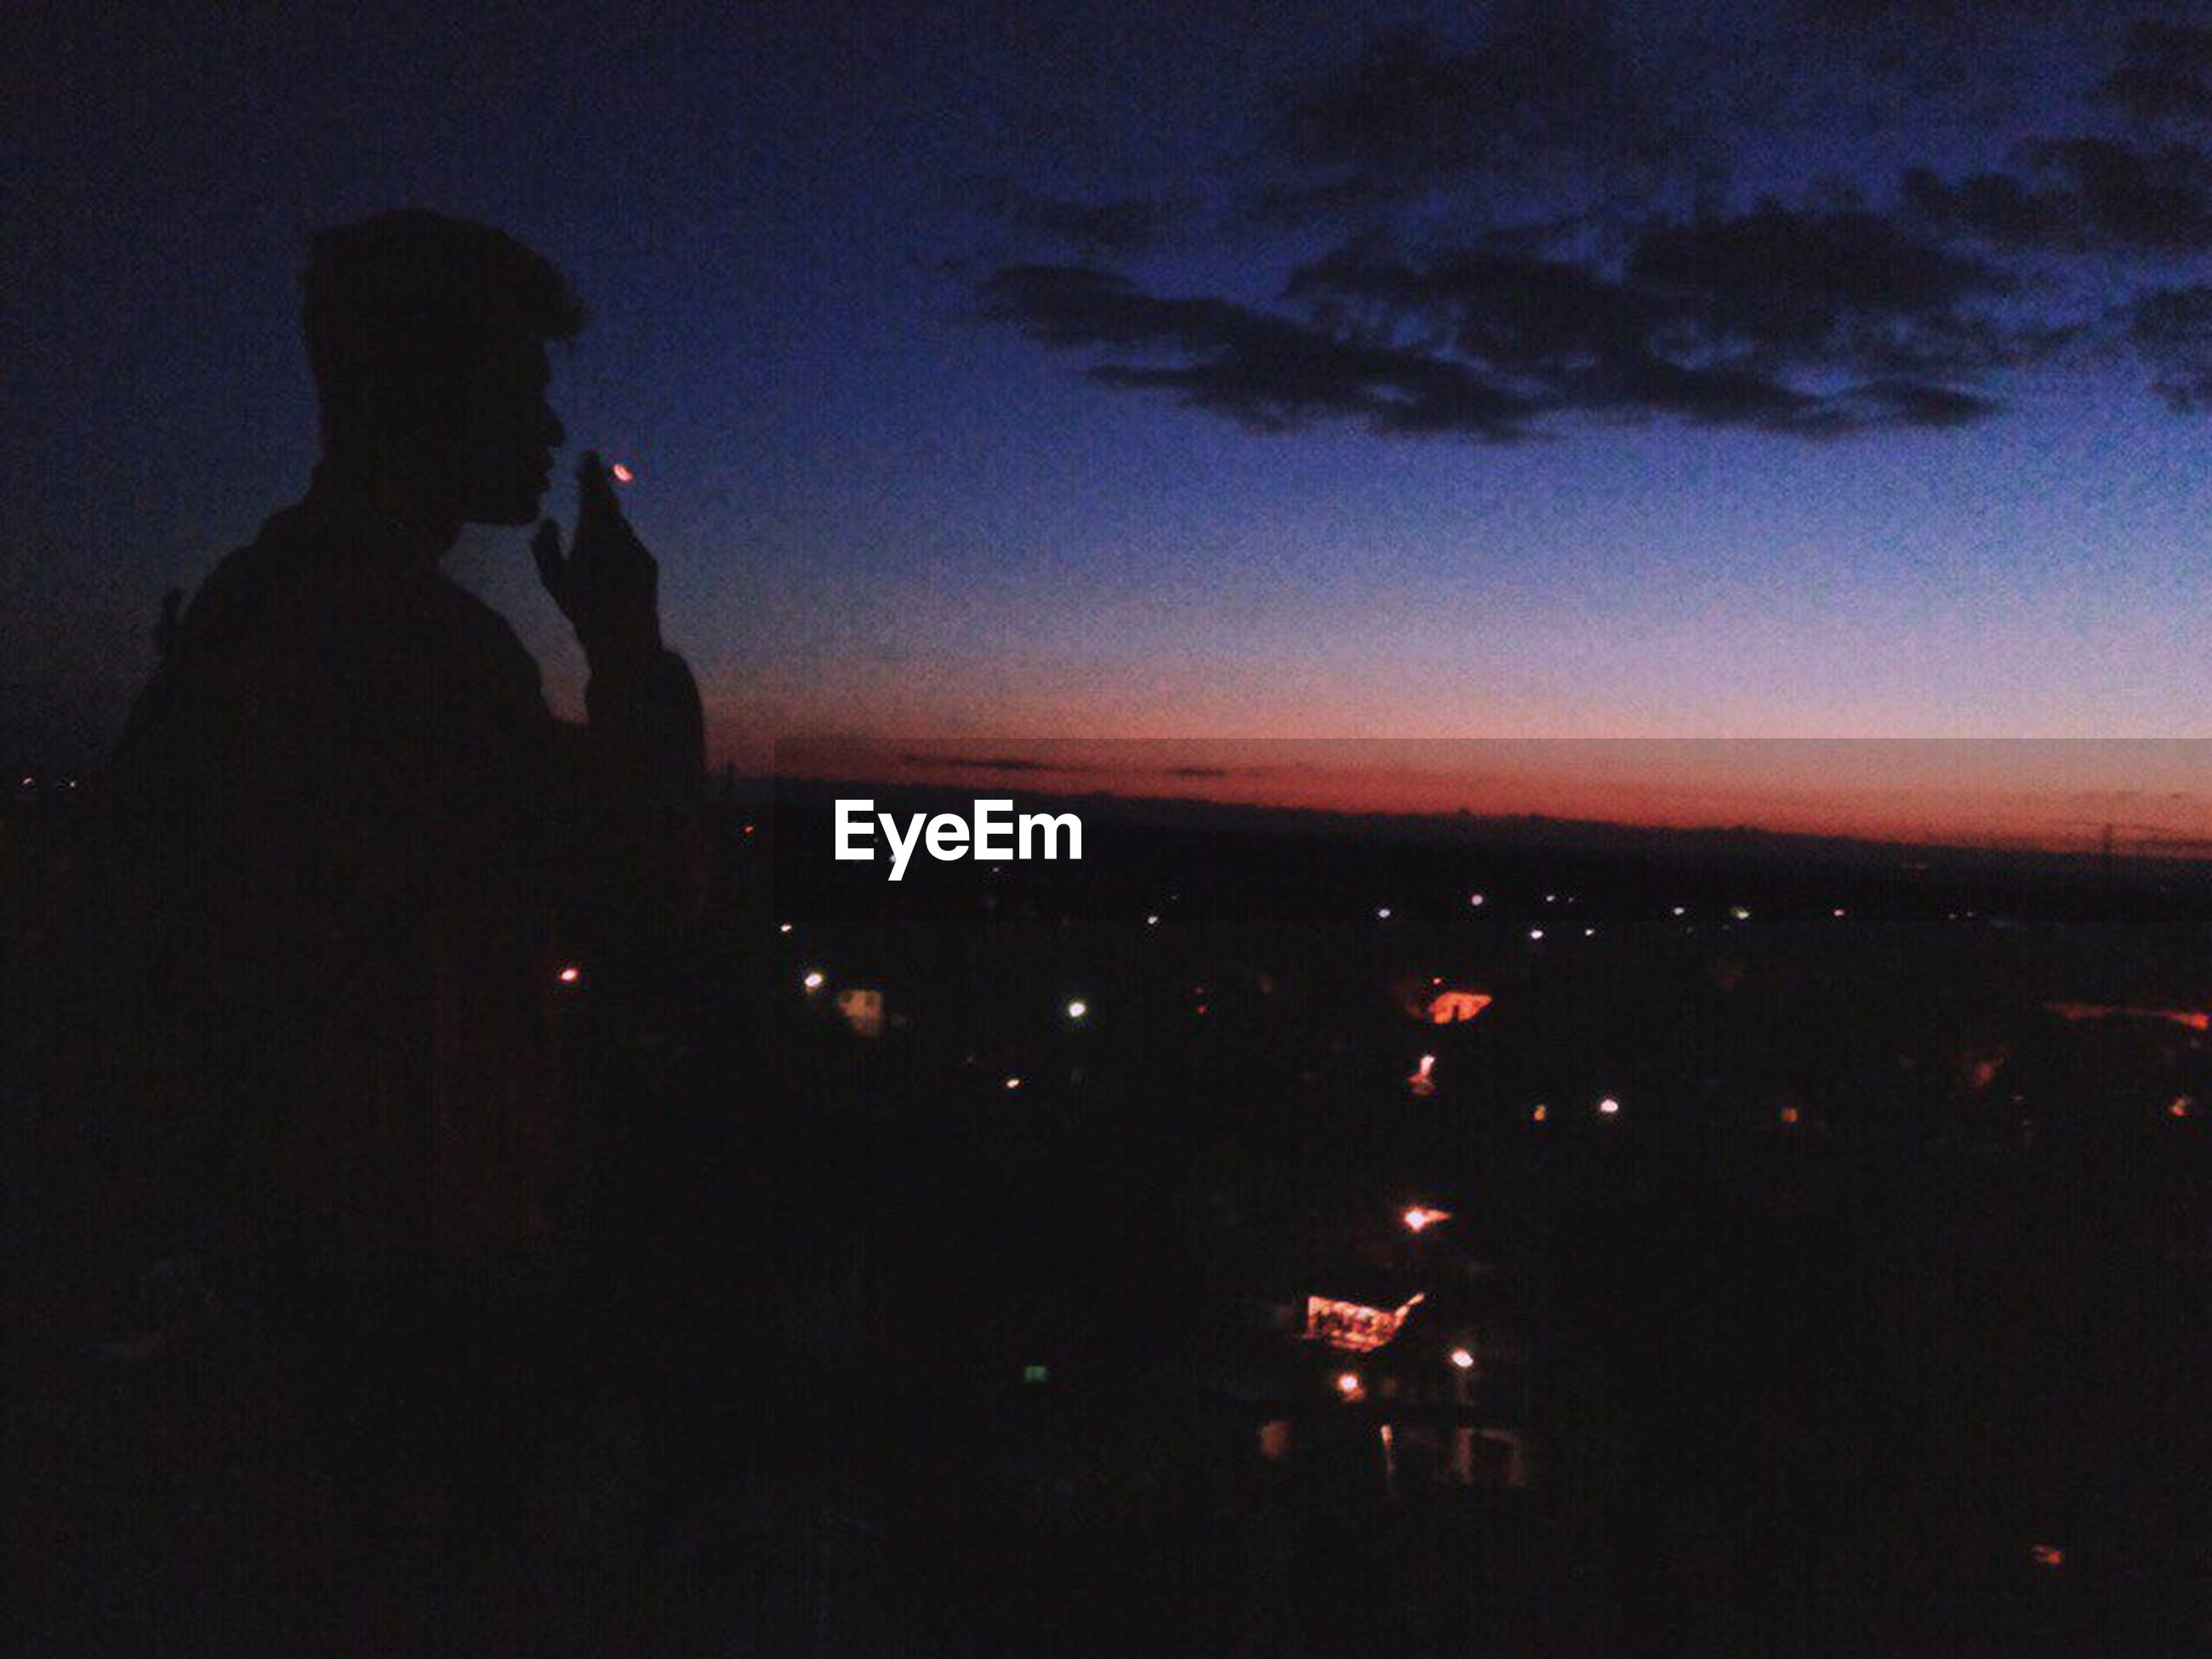 silhouette, night, real people, one person, sky, leisure activity, sunset, lifestyles, standing, photographing, bad habit, side view, outdoors, technology, nature, men, illuminated, beauty in nature, wireless technology, photography themes, scenics, women, young adult, people